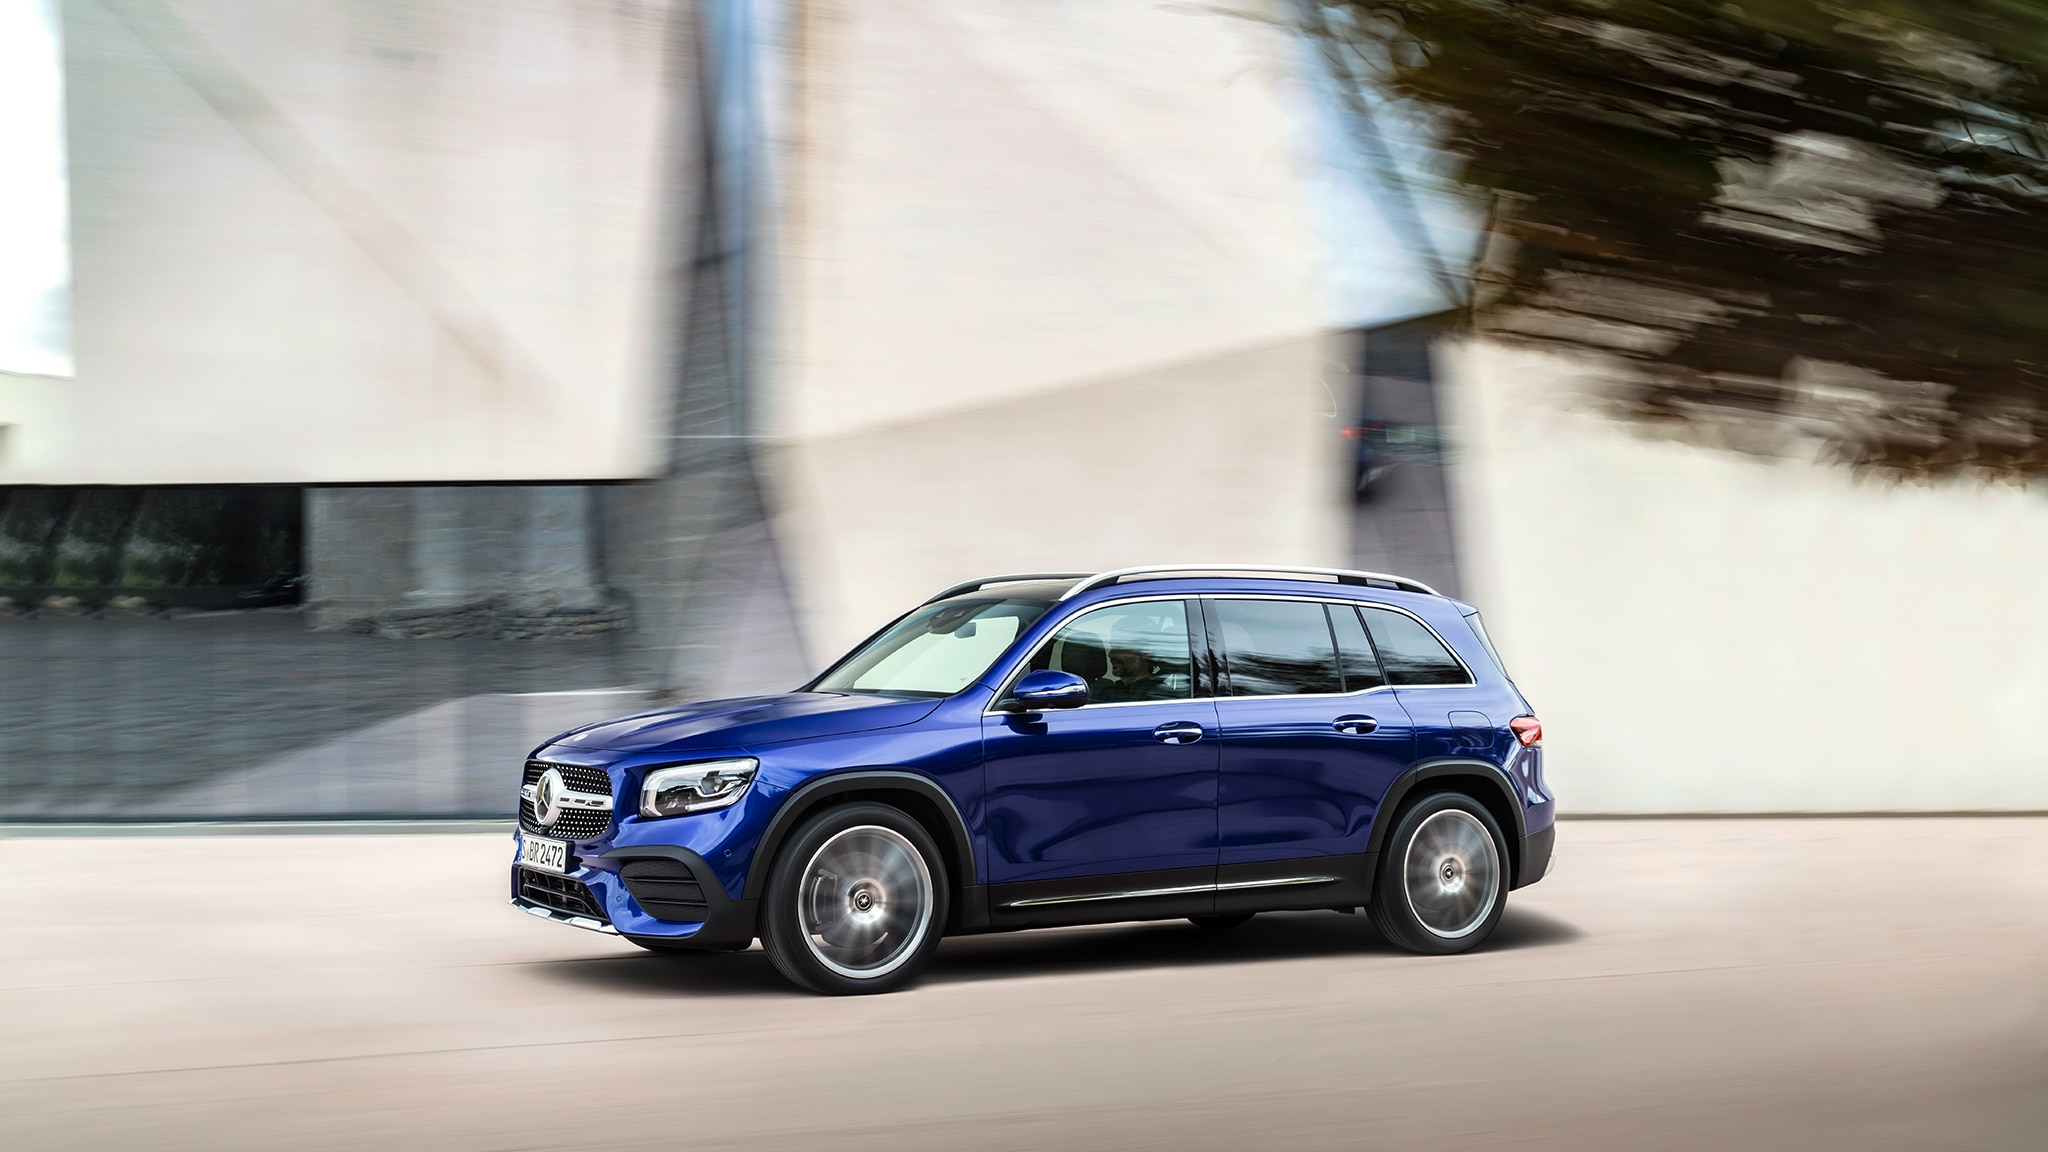 2020 Mercedes – Benz GLB SUV Release Date and Plug-In Hybrid Specs